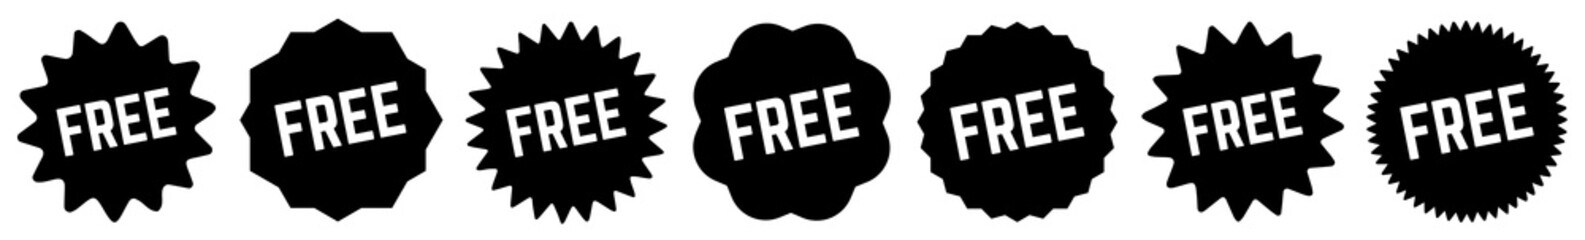 Free Tag Black | Special Offer Icon | Sticker | Deal Label | Variations Wall mural